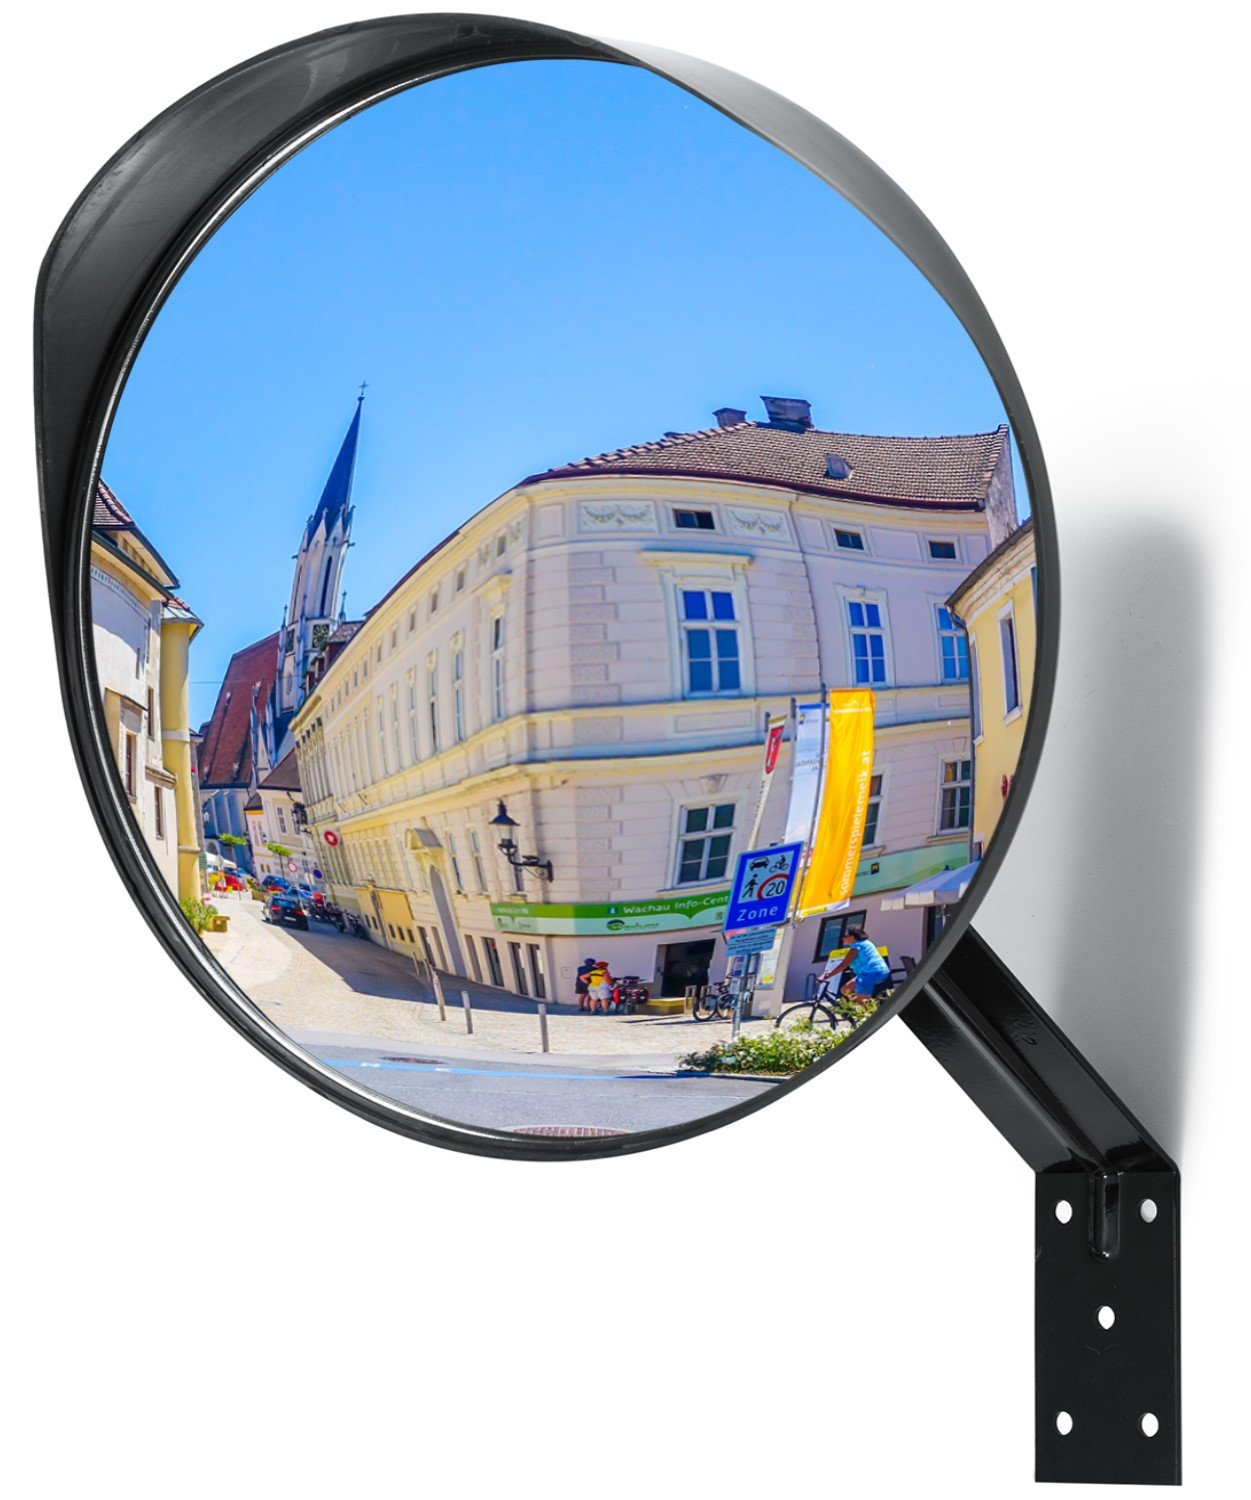 "Adjustable Convex Mirror - Clear View Garage and Driveway Park Assistant - 12"" Curved Security Mirror Extends Your Field of View to Increase Safety"